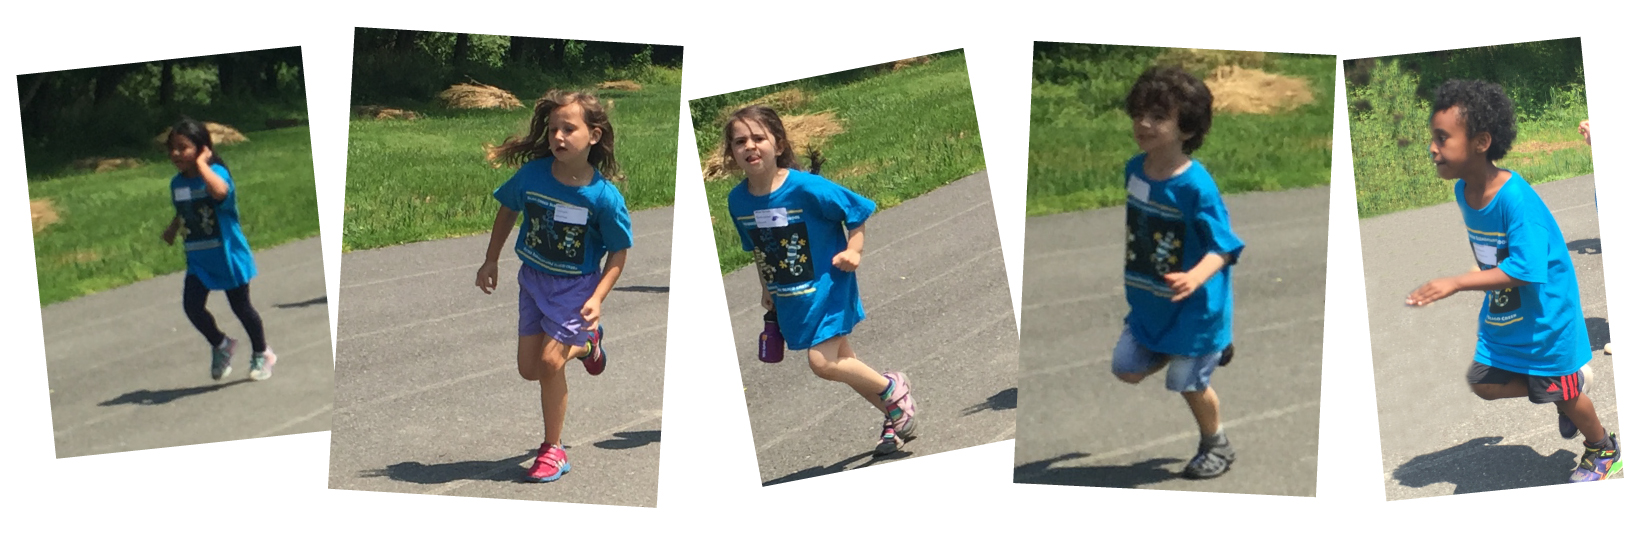 SCES_Students_Striding